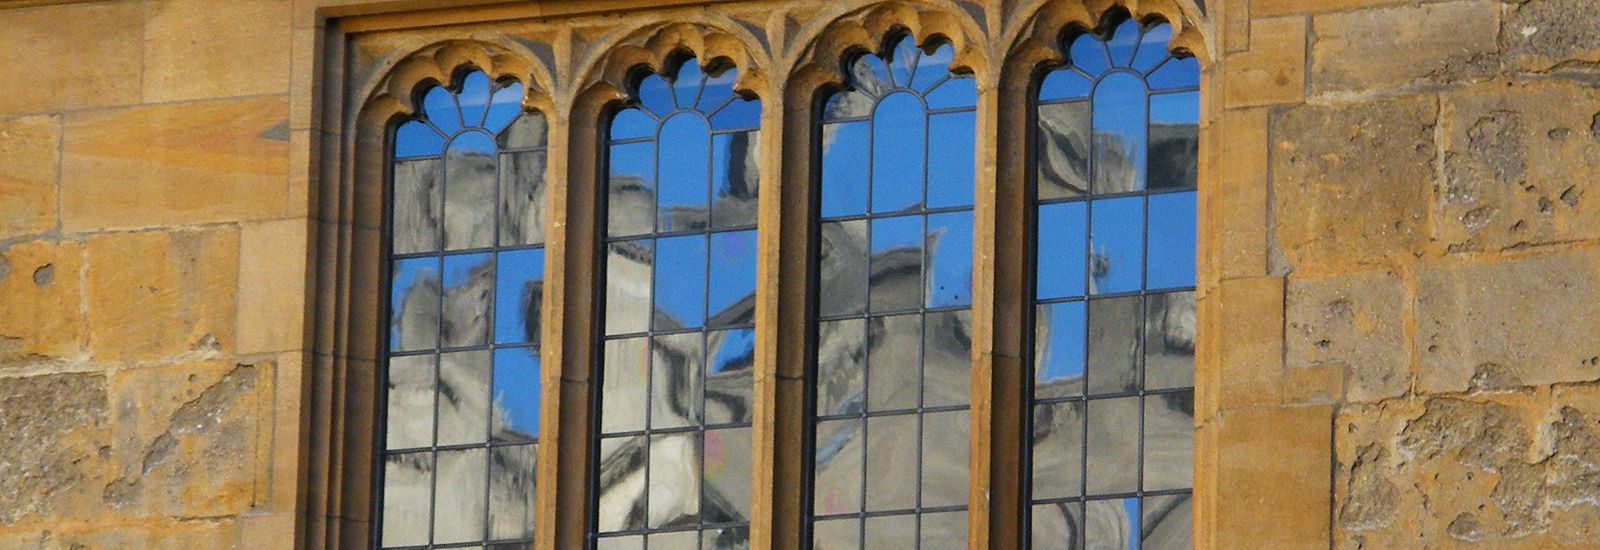 Reflections in the Old Schools